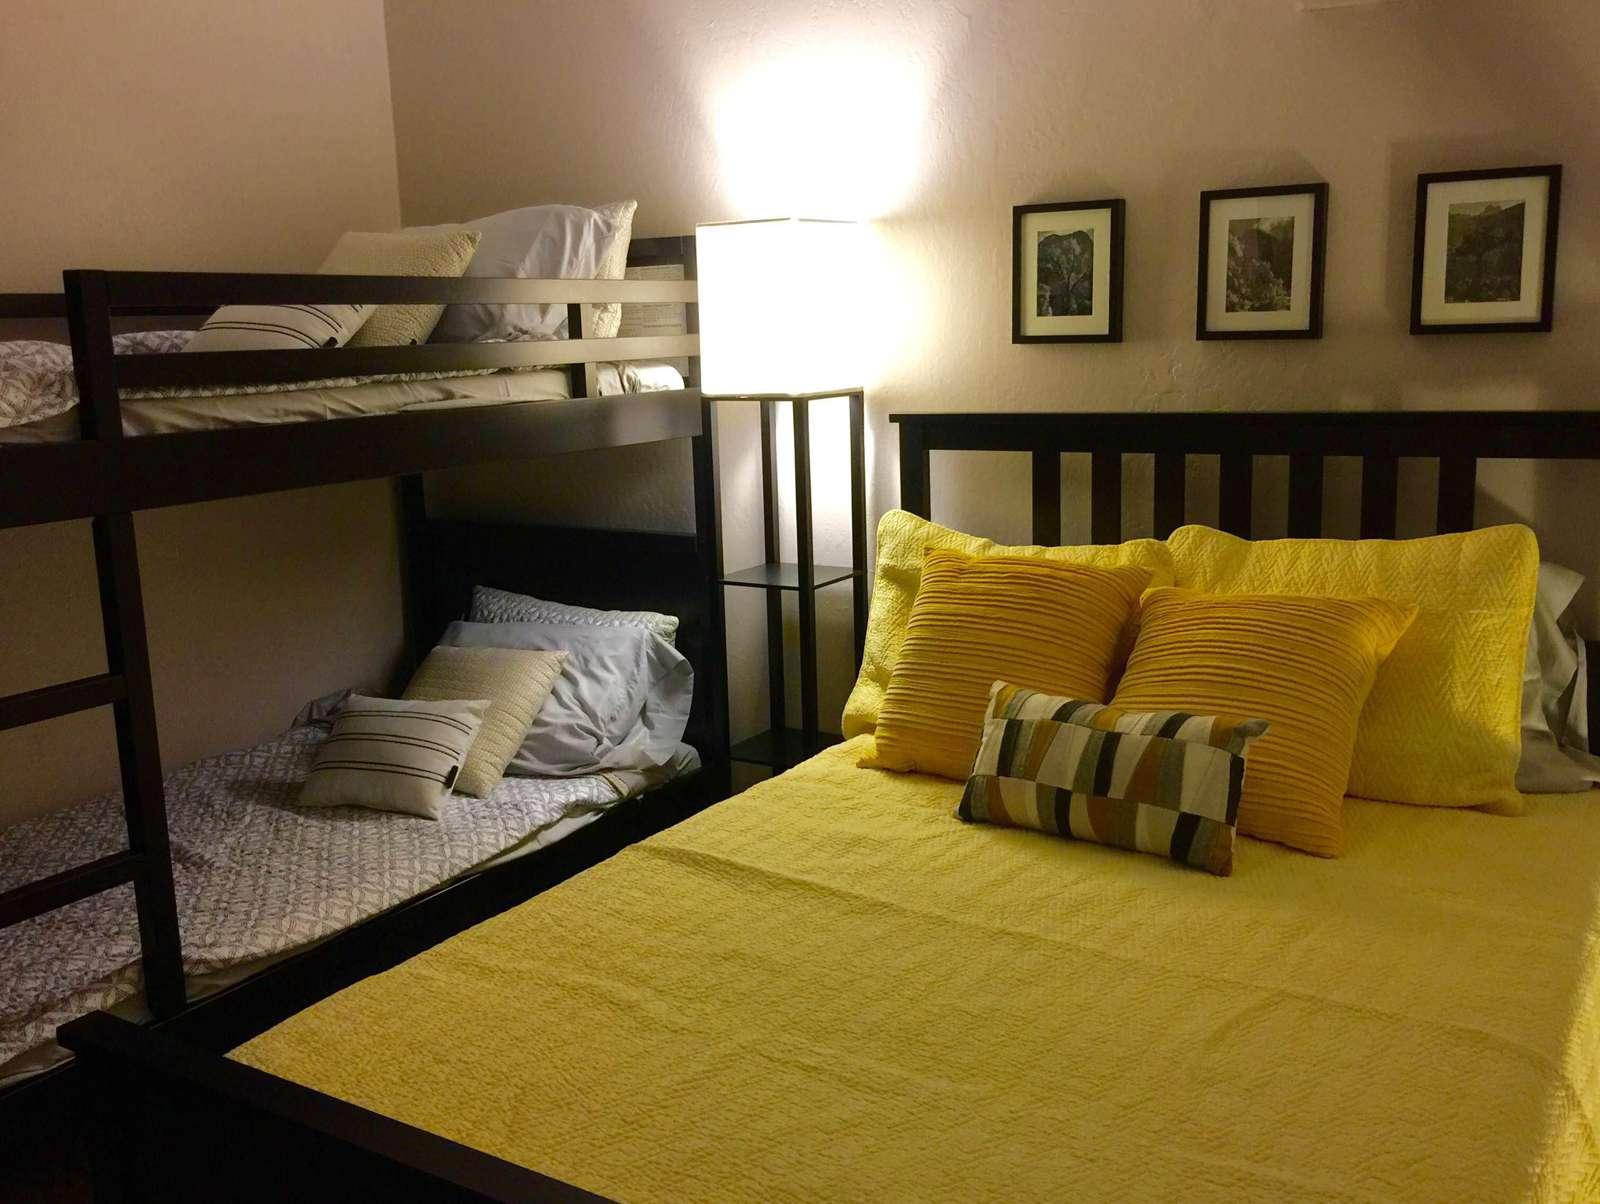 Your full size bed and bunk beds (2 twins) upstairs in the loft.